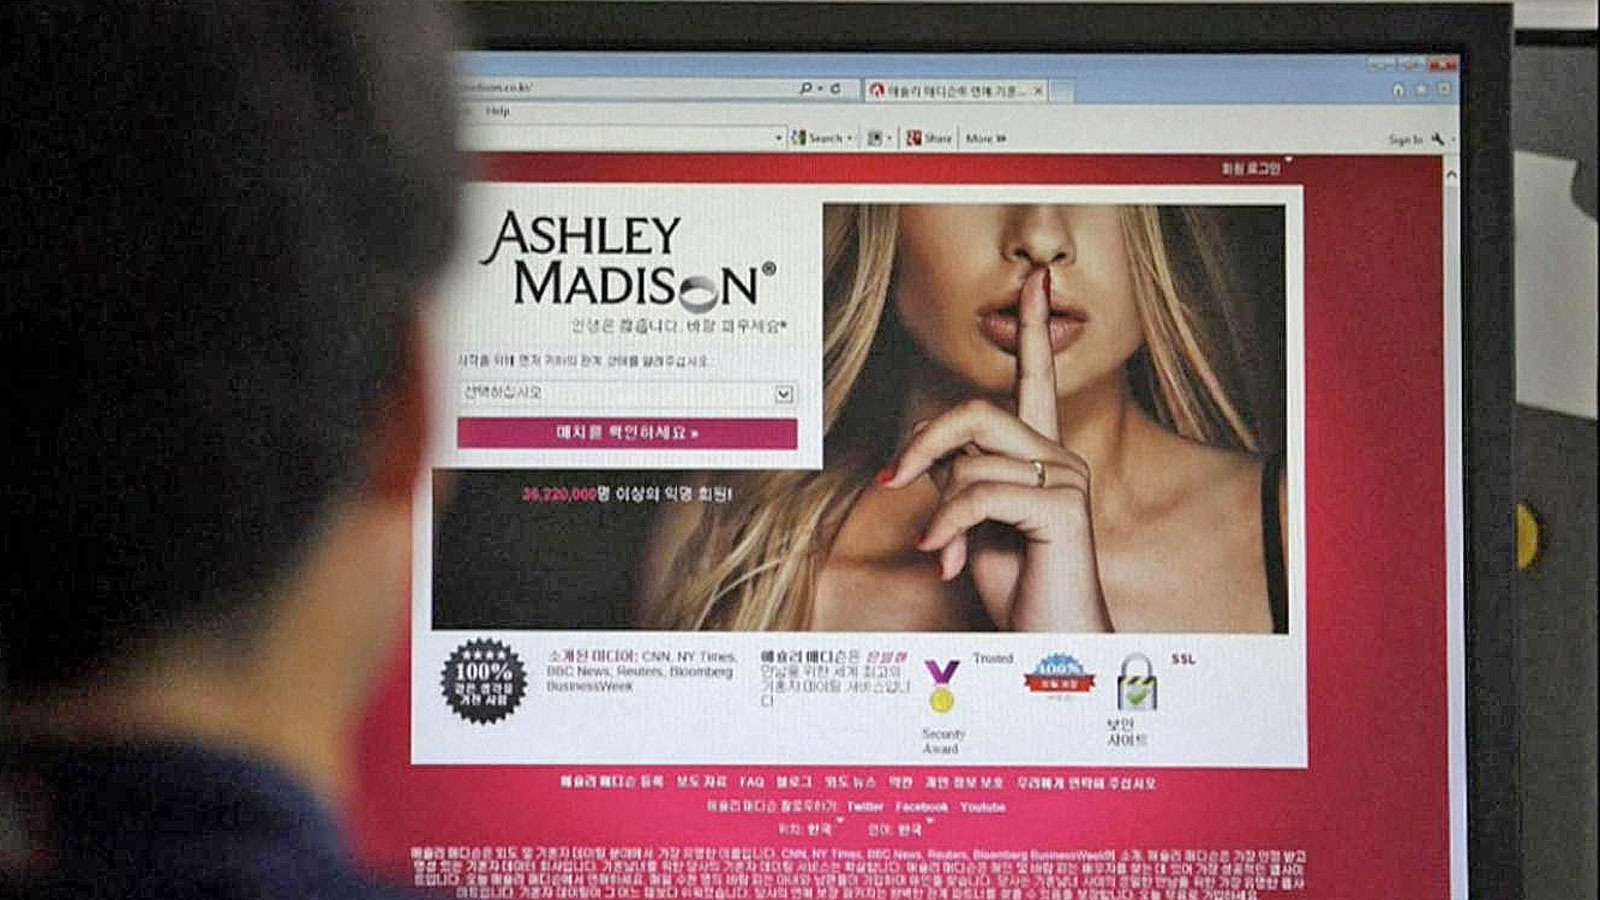 ashley falls dating site The operators of the ashley madison affair-minded dating website agreed ashley madison dating site to researchers track chinese space station as it falls.